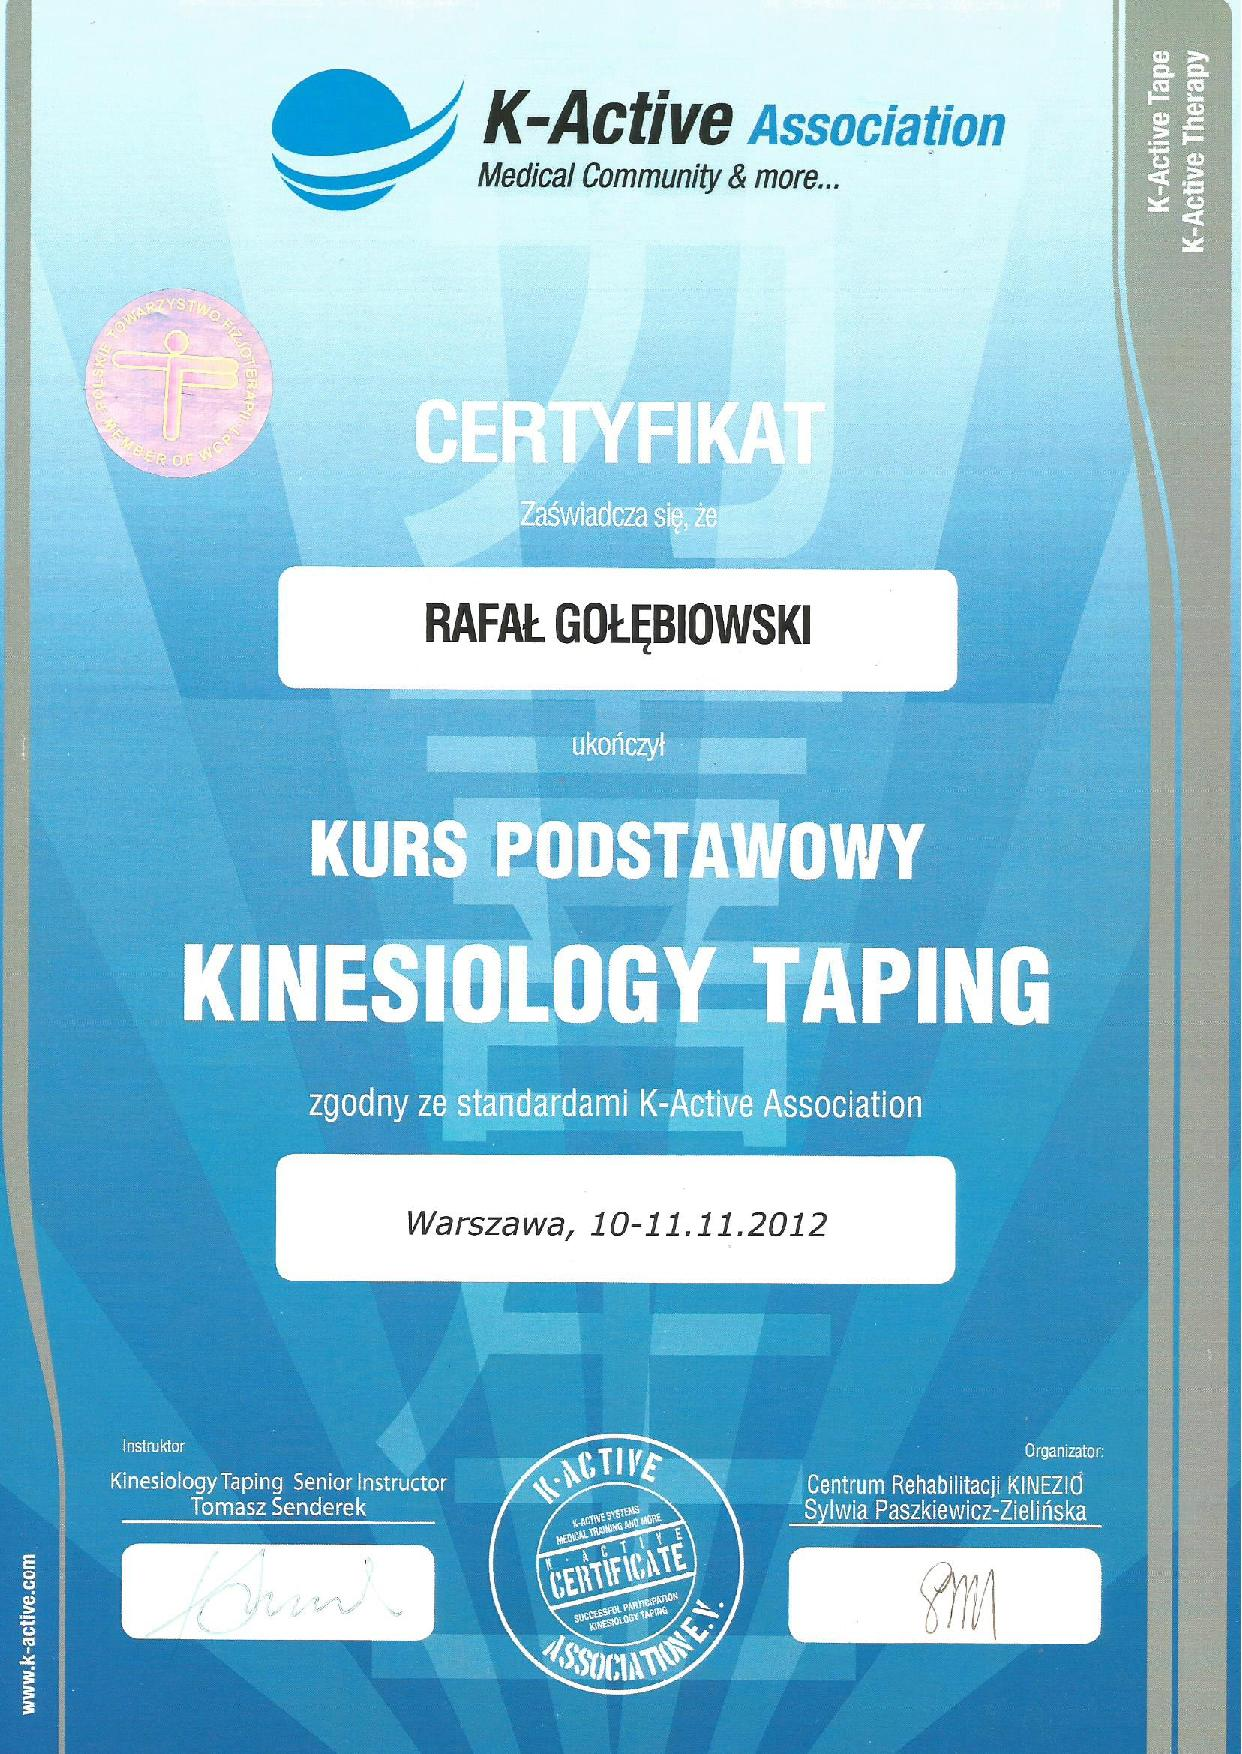 Kinesiology-Taping-page-001